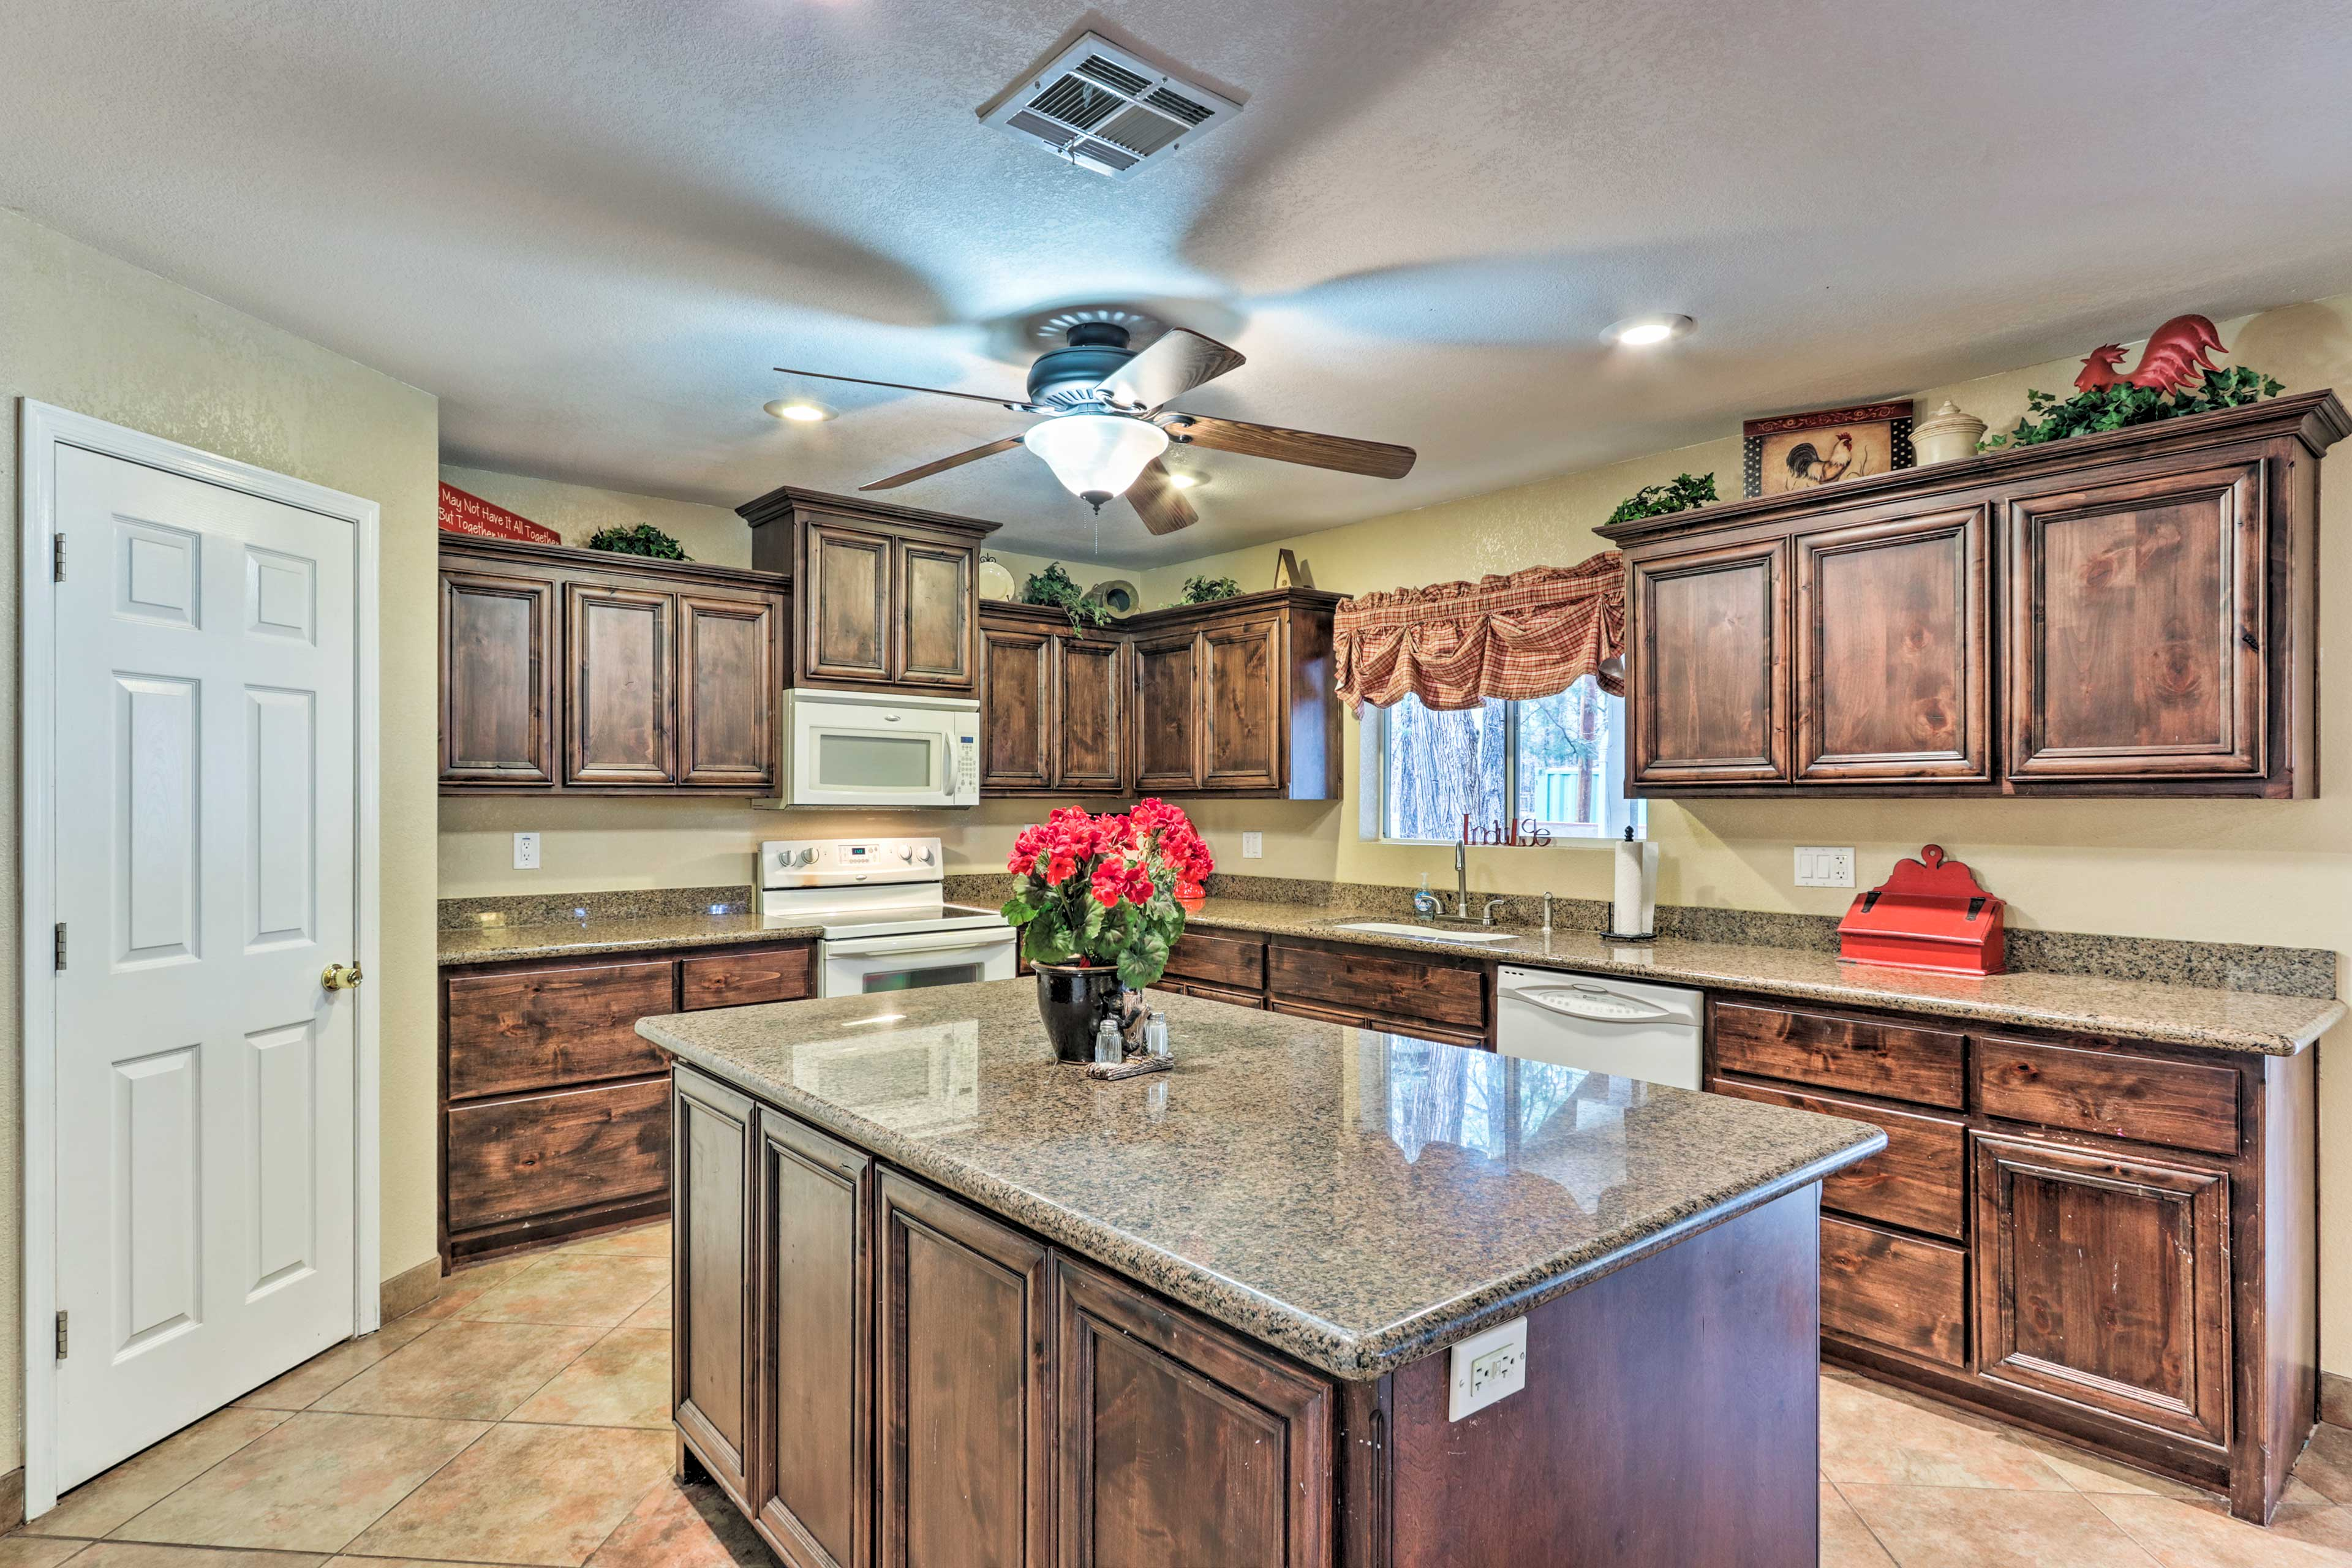 The fully equipped kitchen boasts wraparound counters and an island.